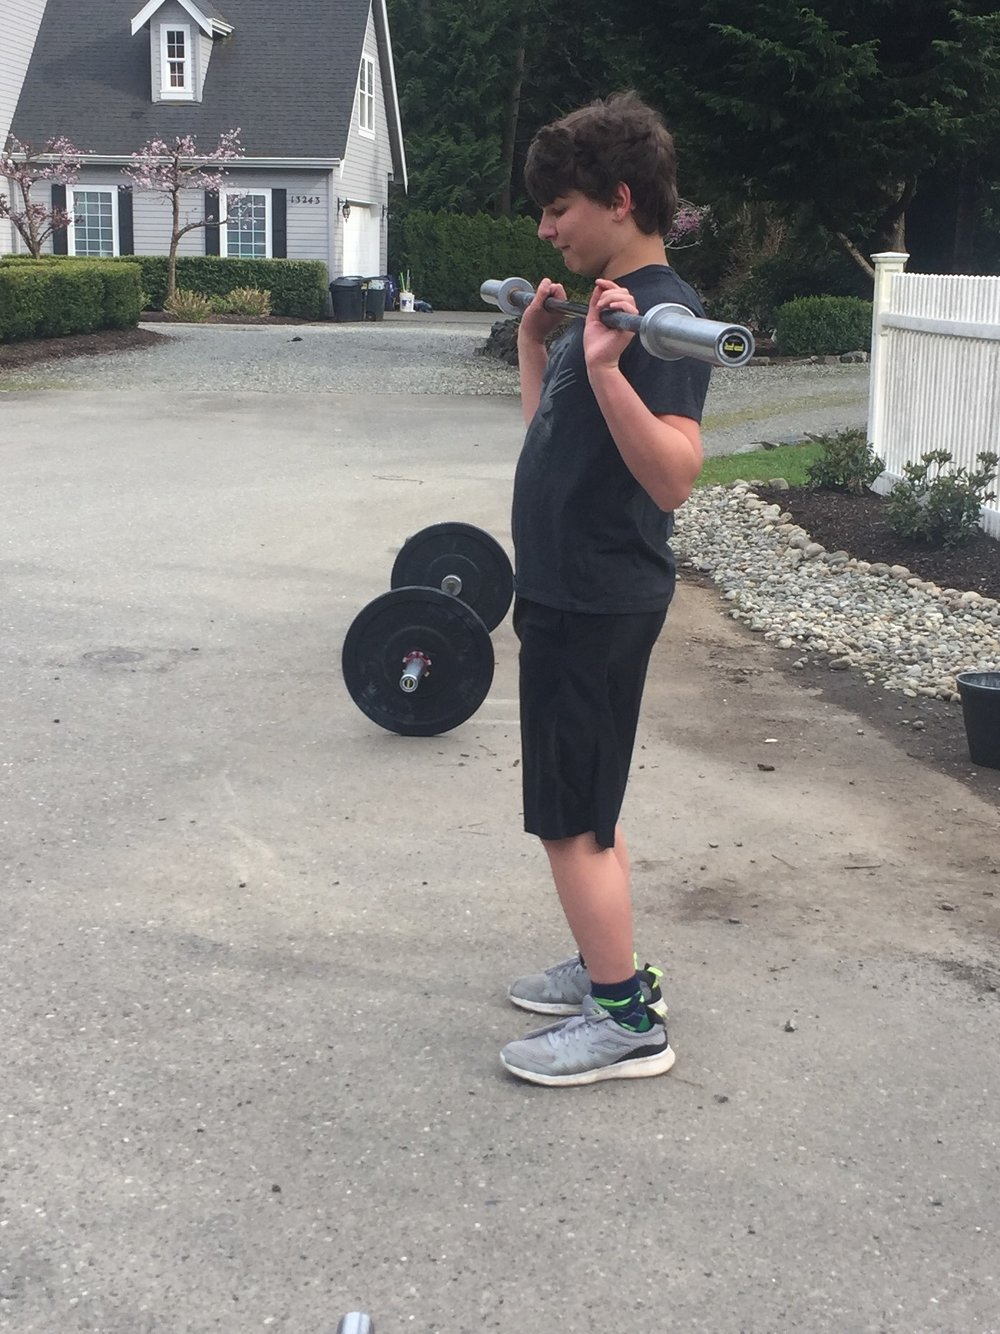 Clayton working on some hang power cleans